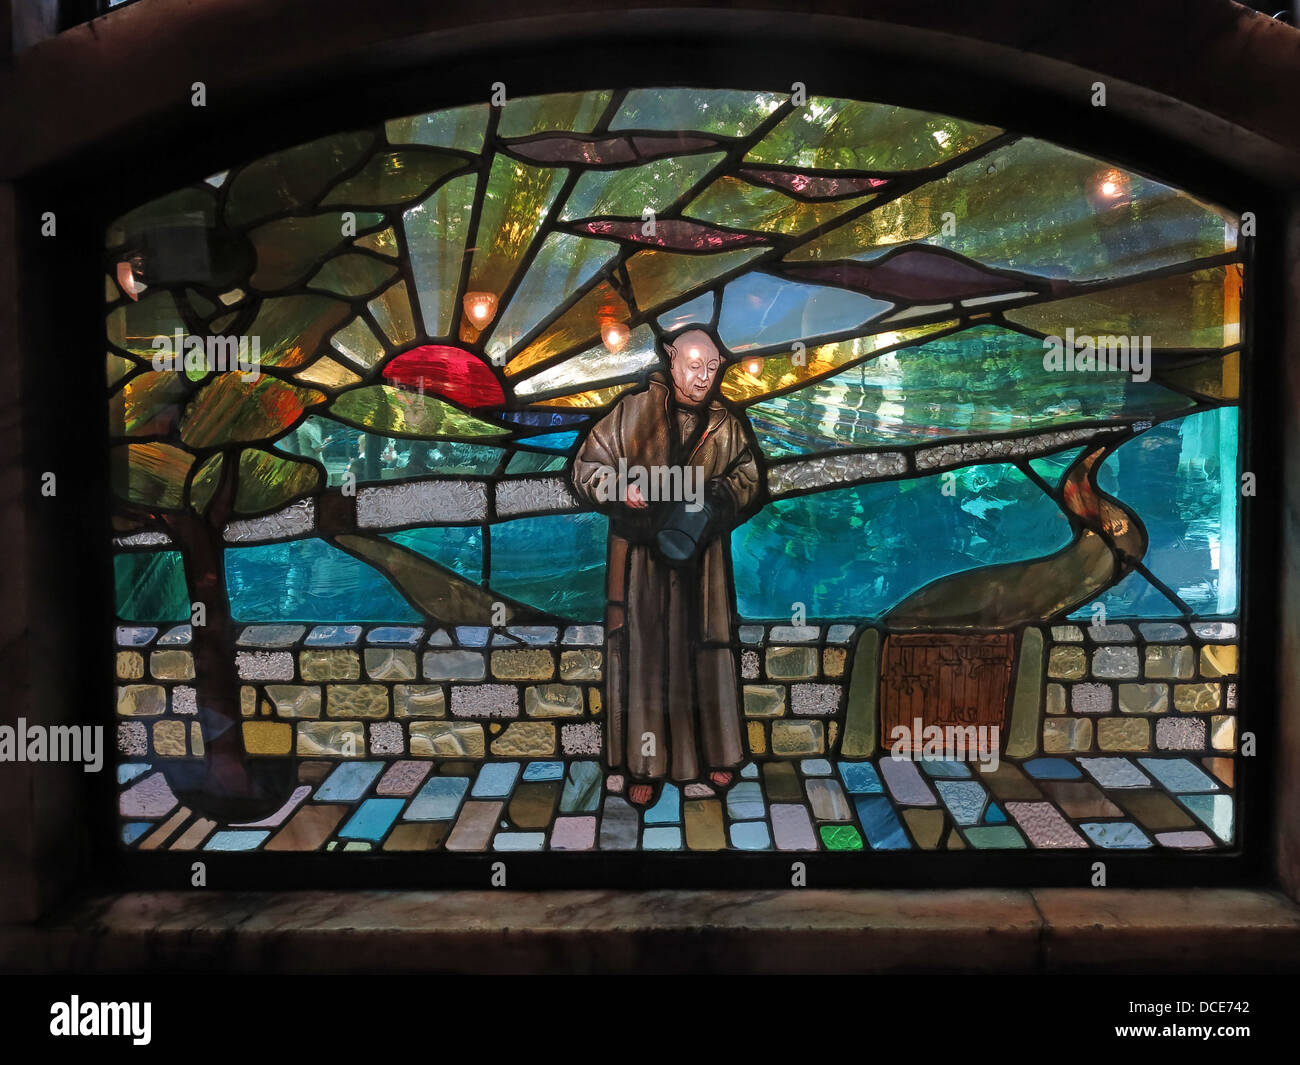 Stained glass window at the Black Friar pub, Blackfriars, London, England UK EC4V 4E - Stock Image